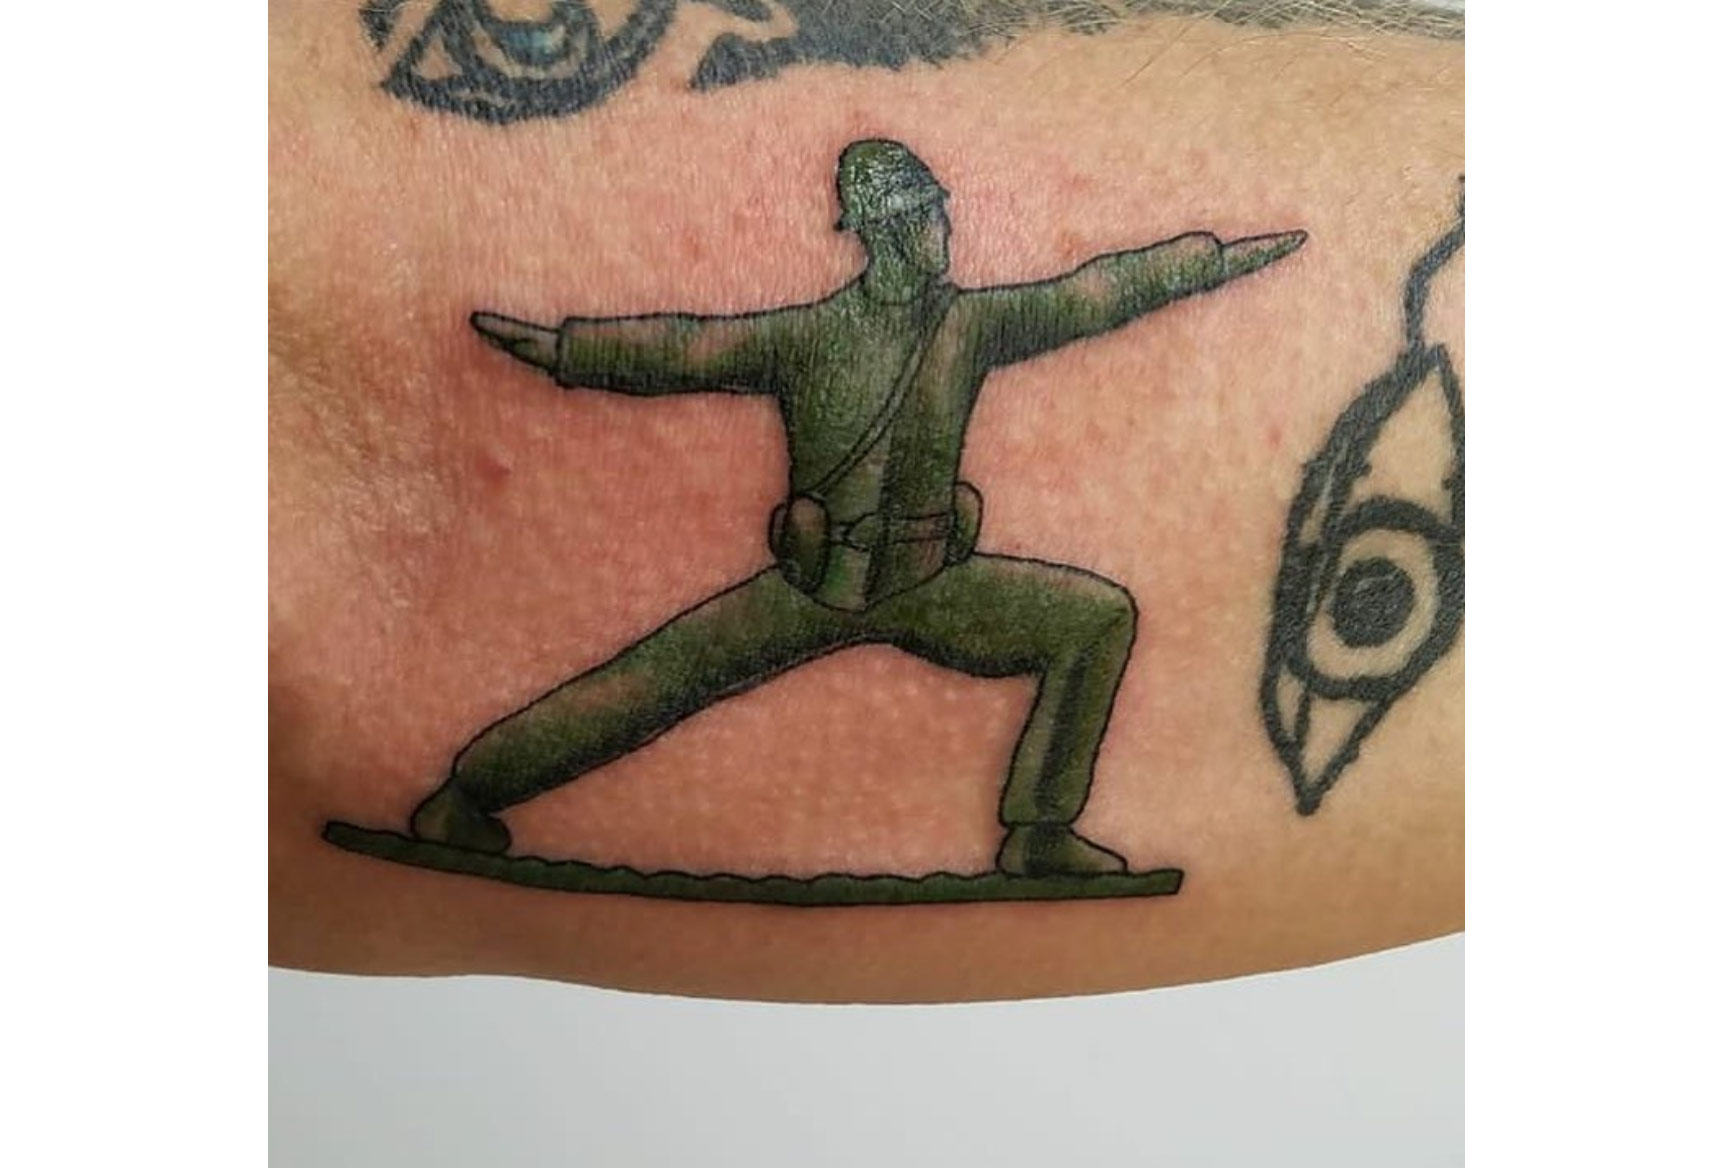 From the arm of a Jeff Sargent, an Army Veteran I met on Instagram. He's a huge advocate of yoga for Veterans with Post Traumatic Stress, and he ended up being an advisor to our storyline.